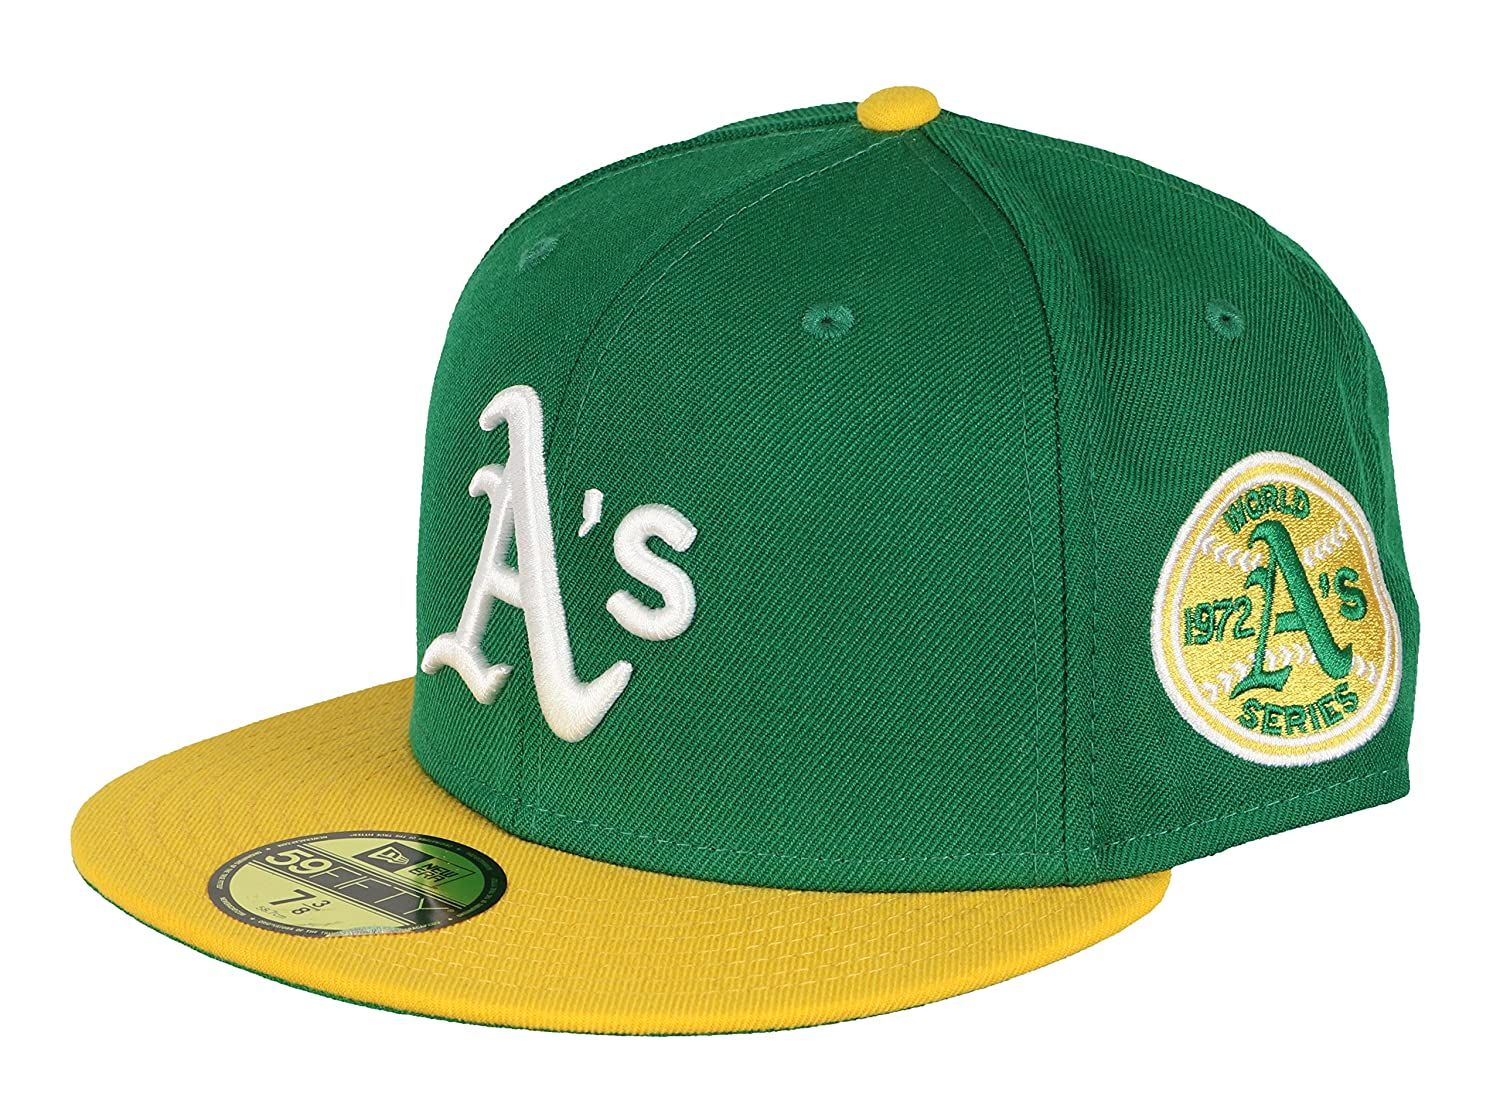 New Era Men s Oakland A s 1972 World Series 59Fifty Fitted Cap 7 1 4 Green  Yellow at Amazon Men s Clothing store  824c0f81715f